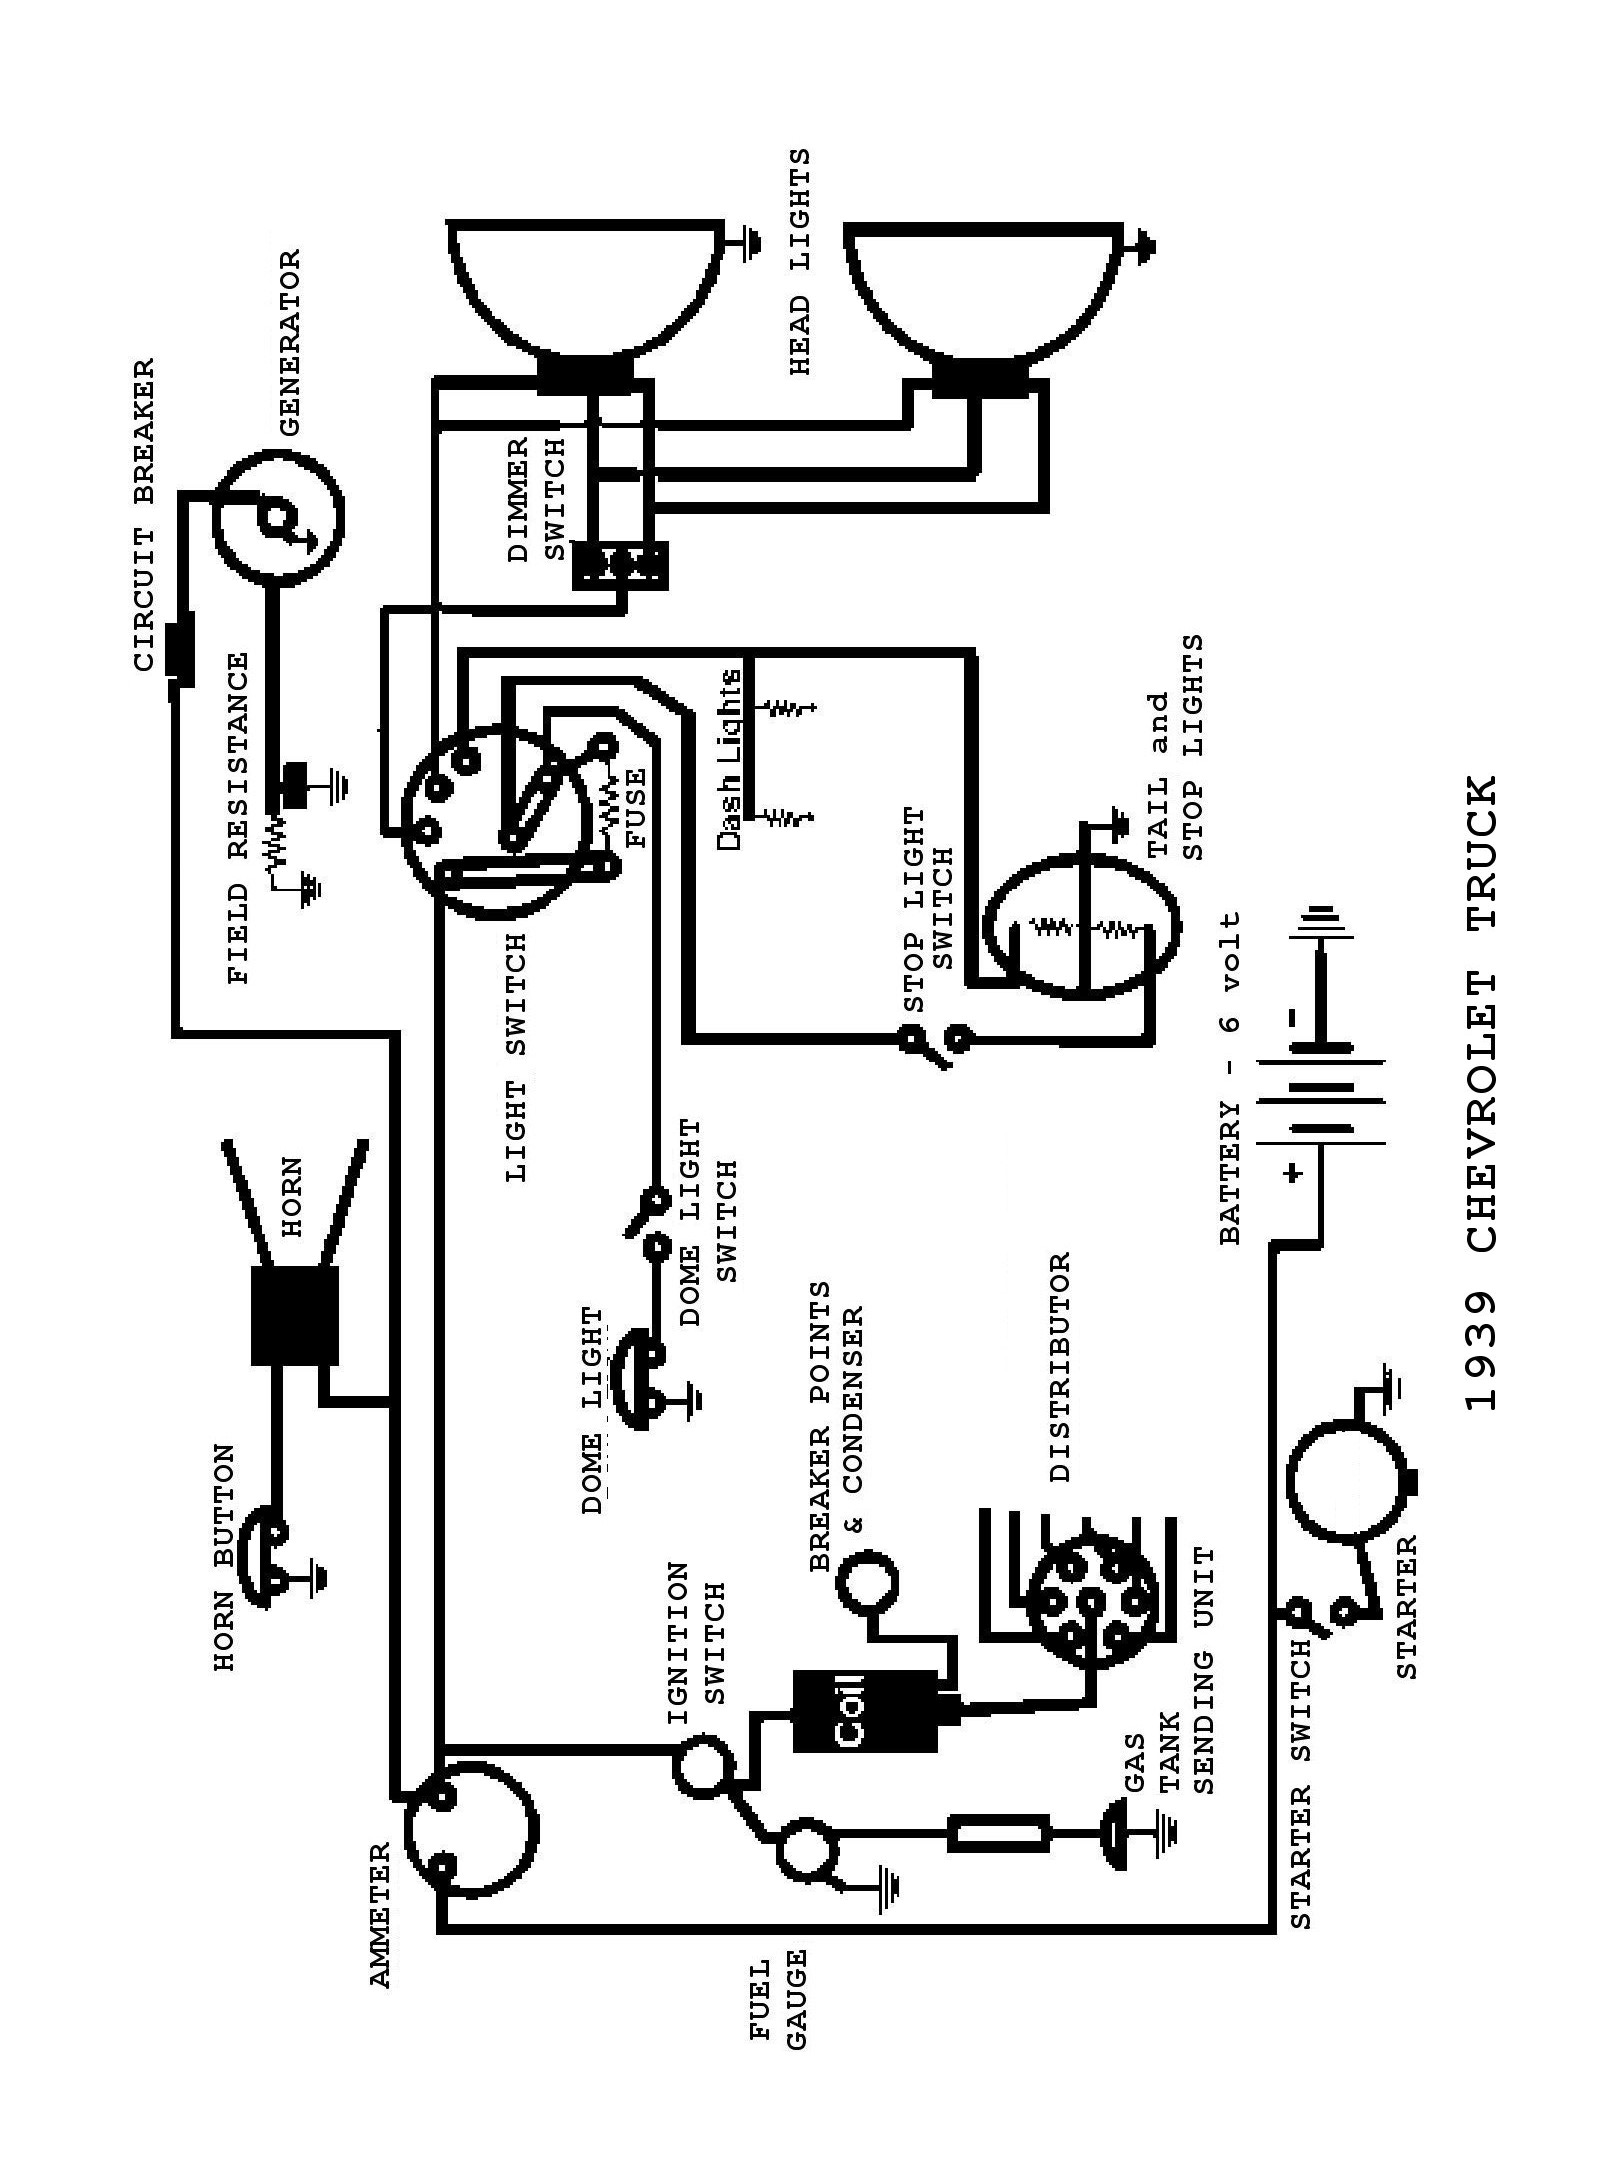 Electrical Wiring Diagram 1939 Chevy, Electrical, Free